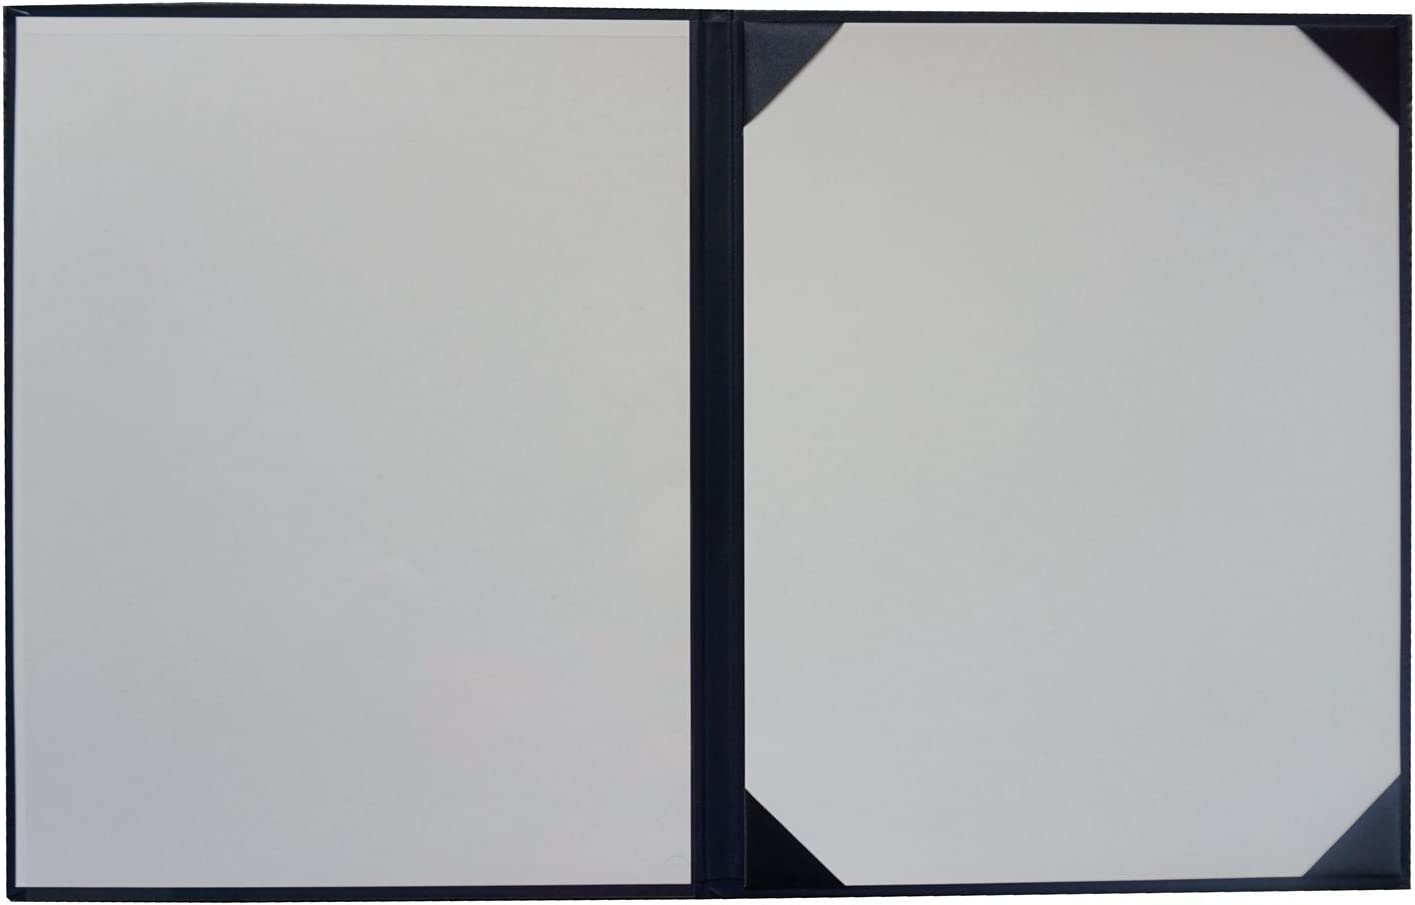 """Certificate Cover Imprinted""""Diploma of Graduation"""" Smooth Diploma Cover 8.5"""" x 11"""" Grad Days(Navy) : Office Products"""